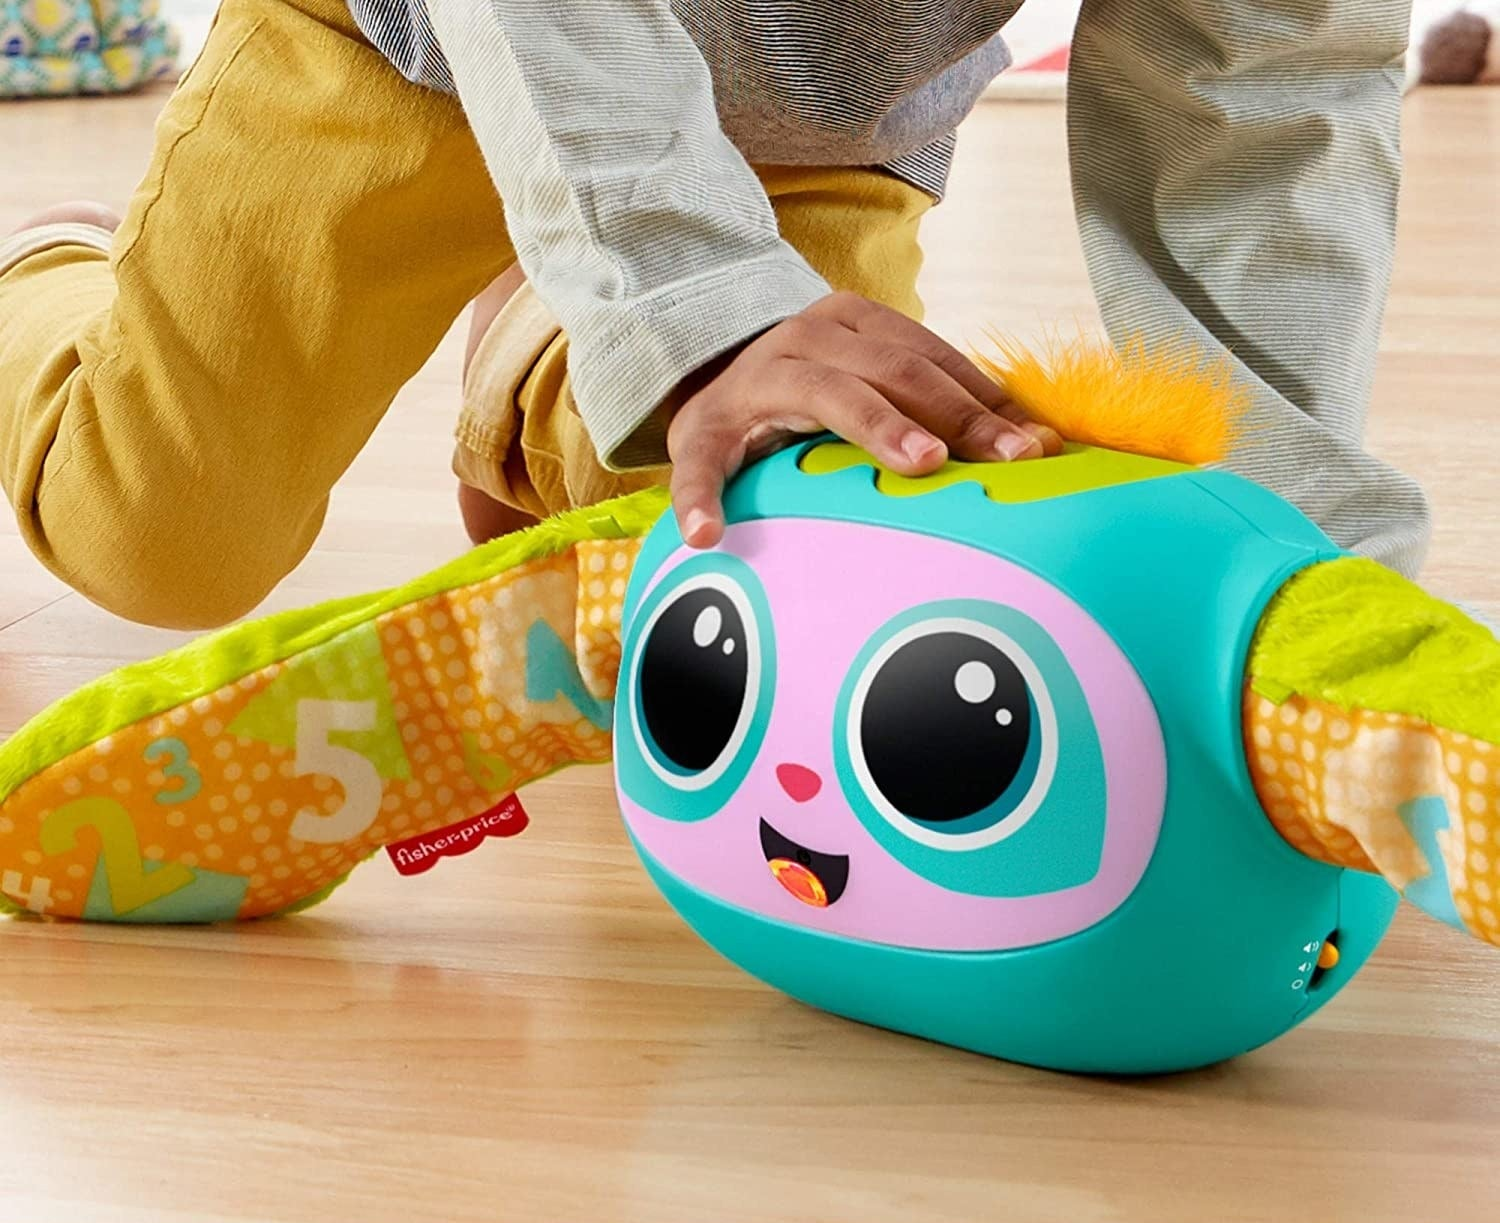 Child model's hand playing with Rovee toy on floor